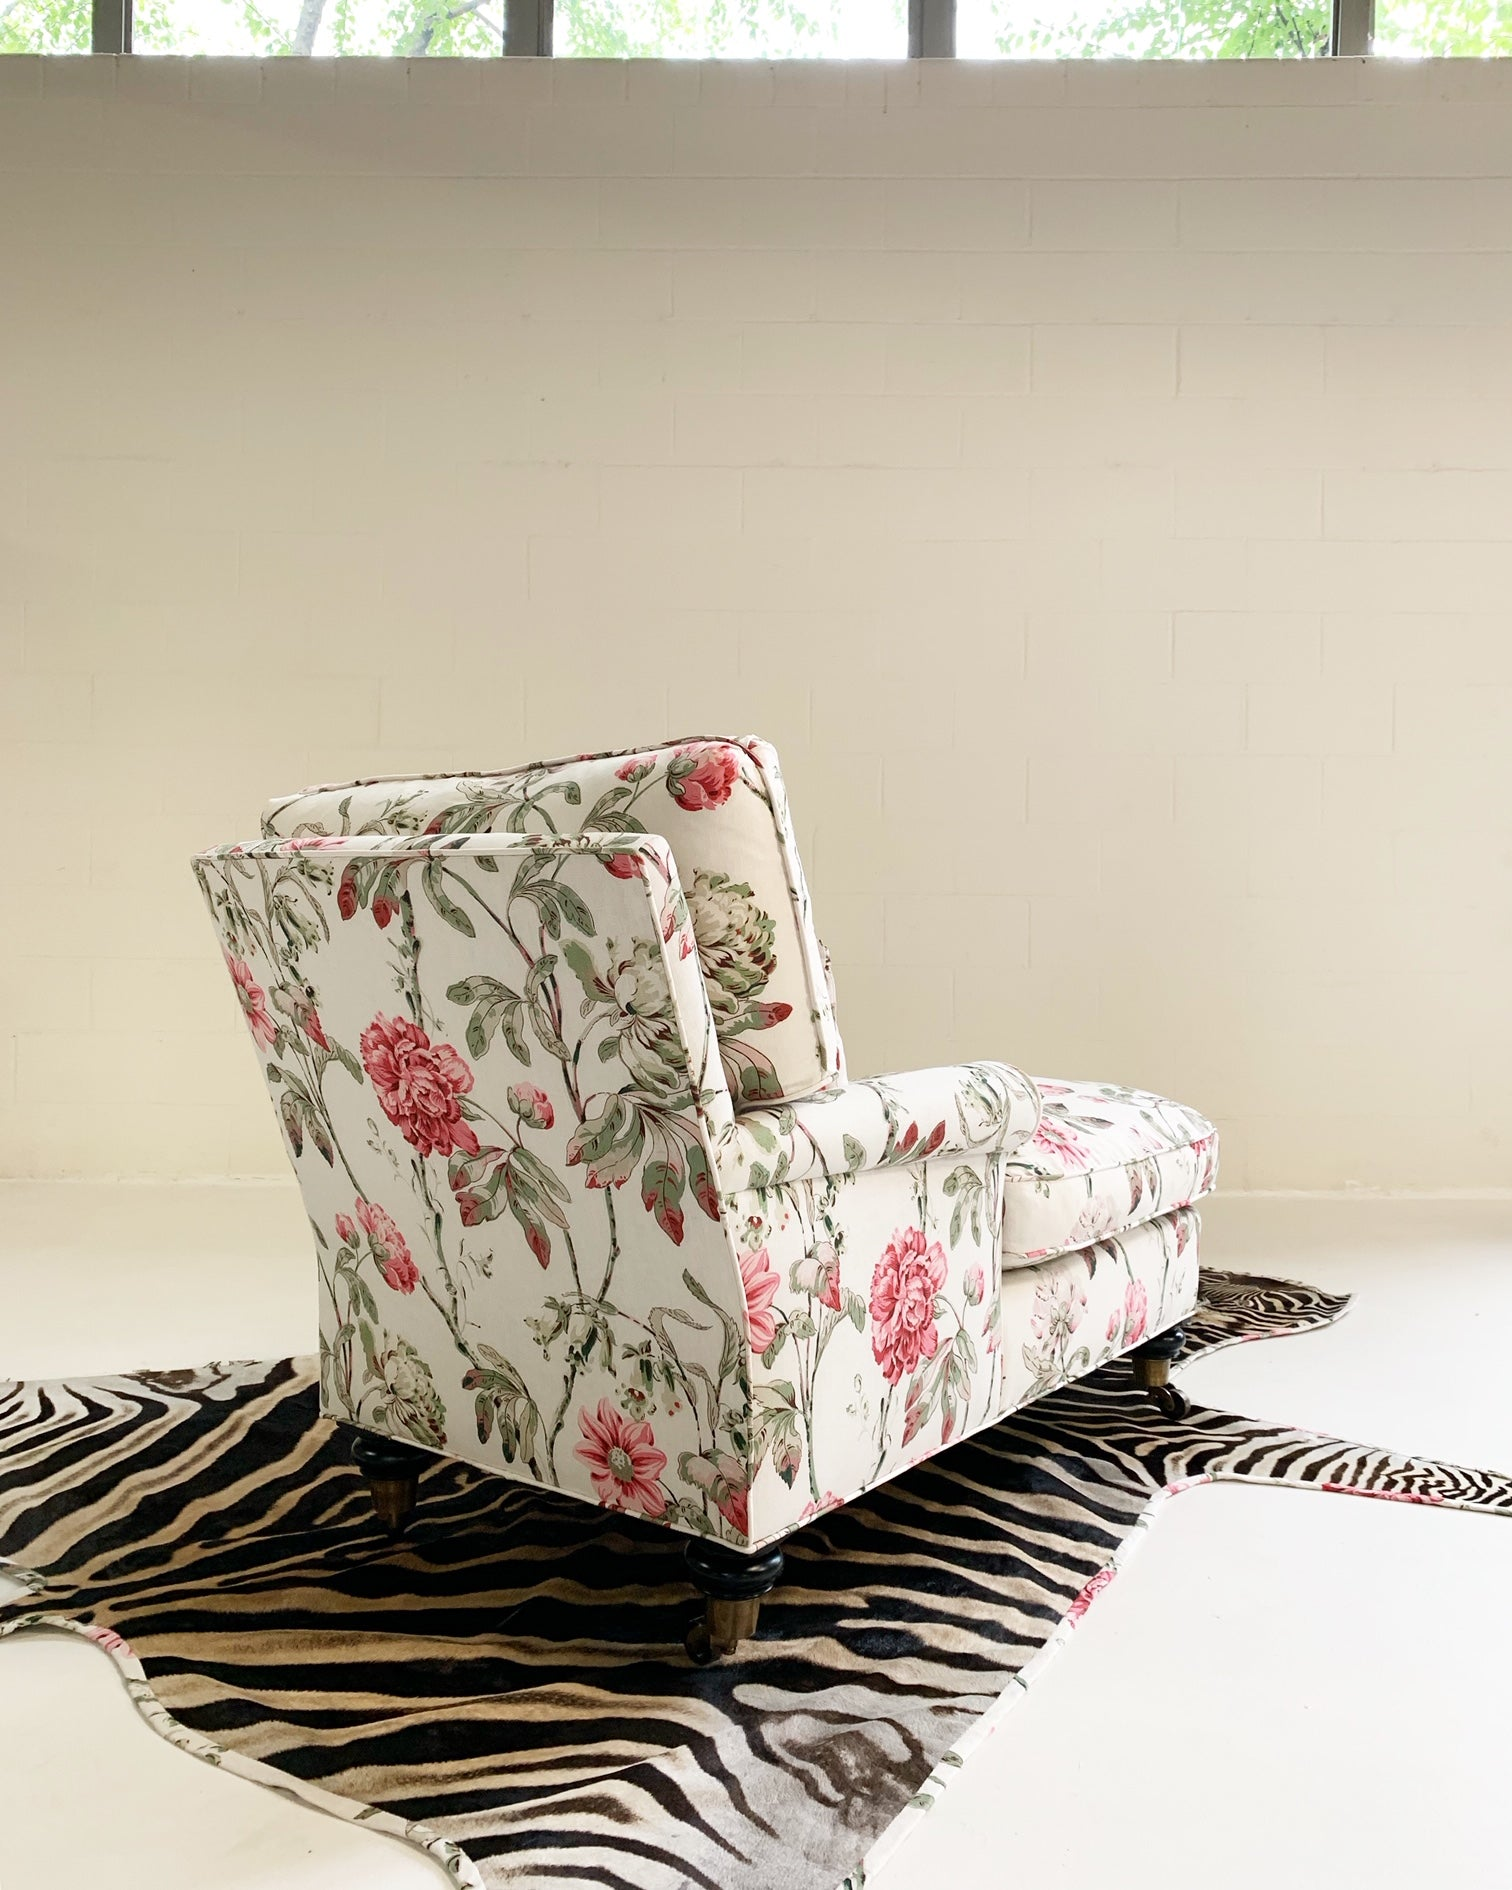 Chaise Lounge in Schumacher Fabric with Zebra Rug - FORSYTH